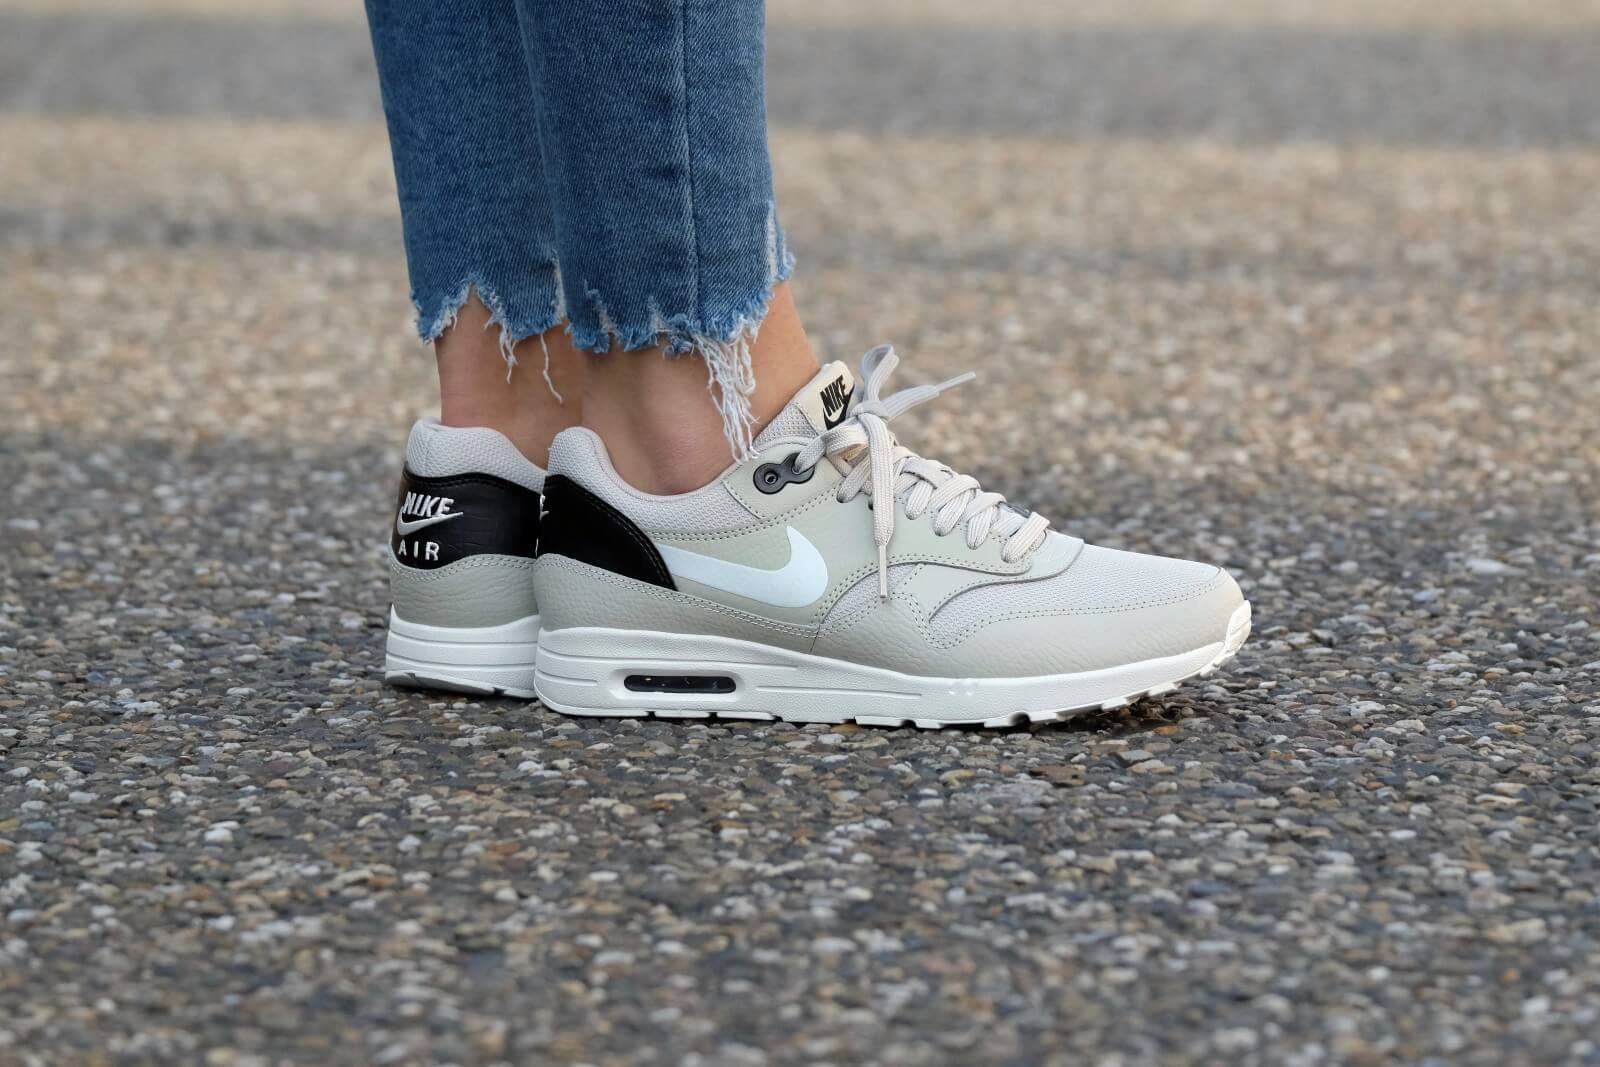 Nike WMNS Air Max 1 Ultra 2.0 - Pale Grey/Summit White-Black -